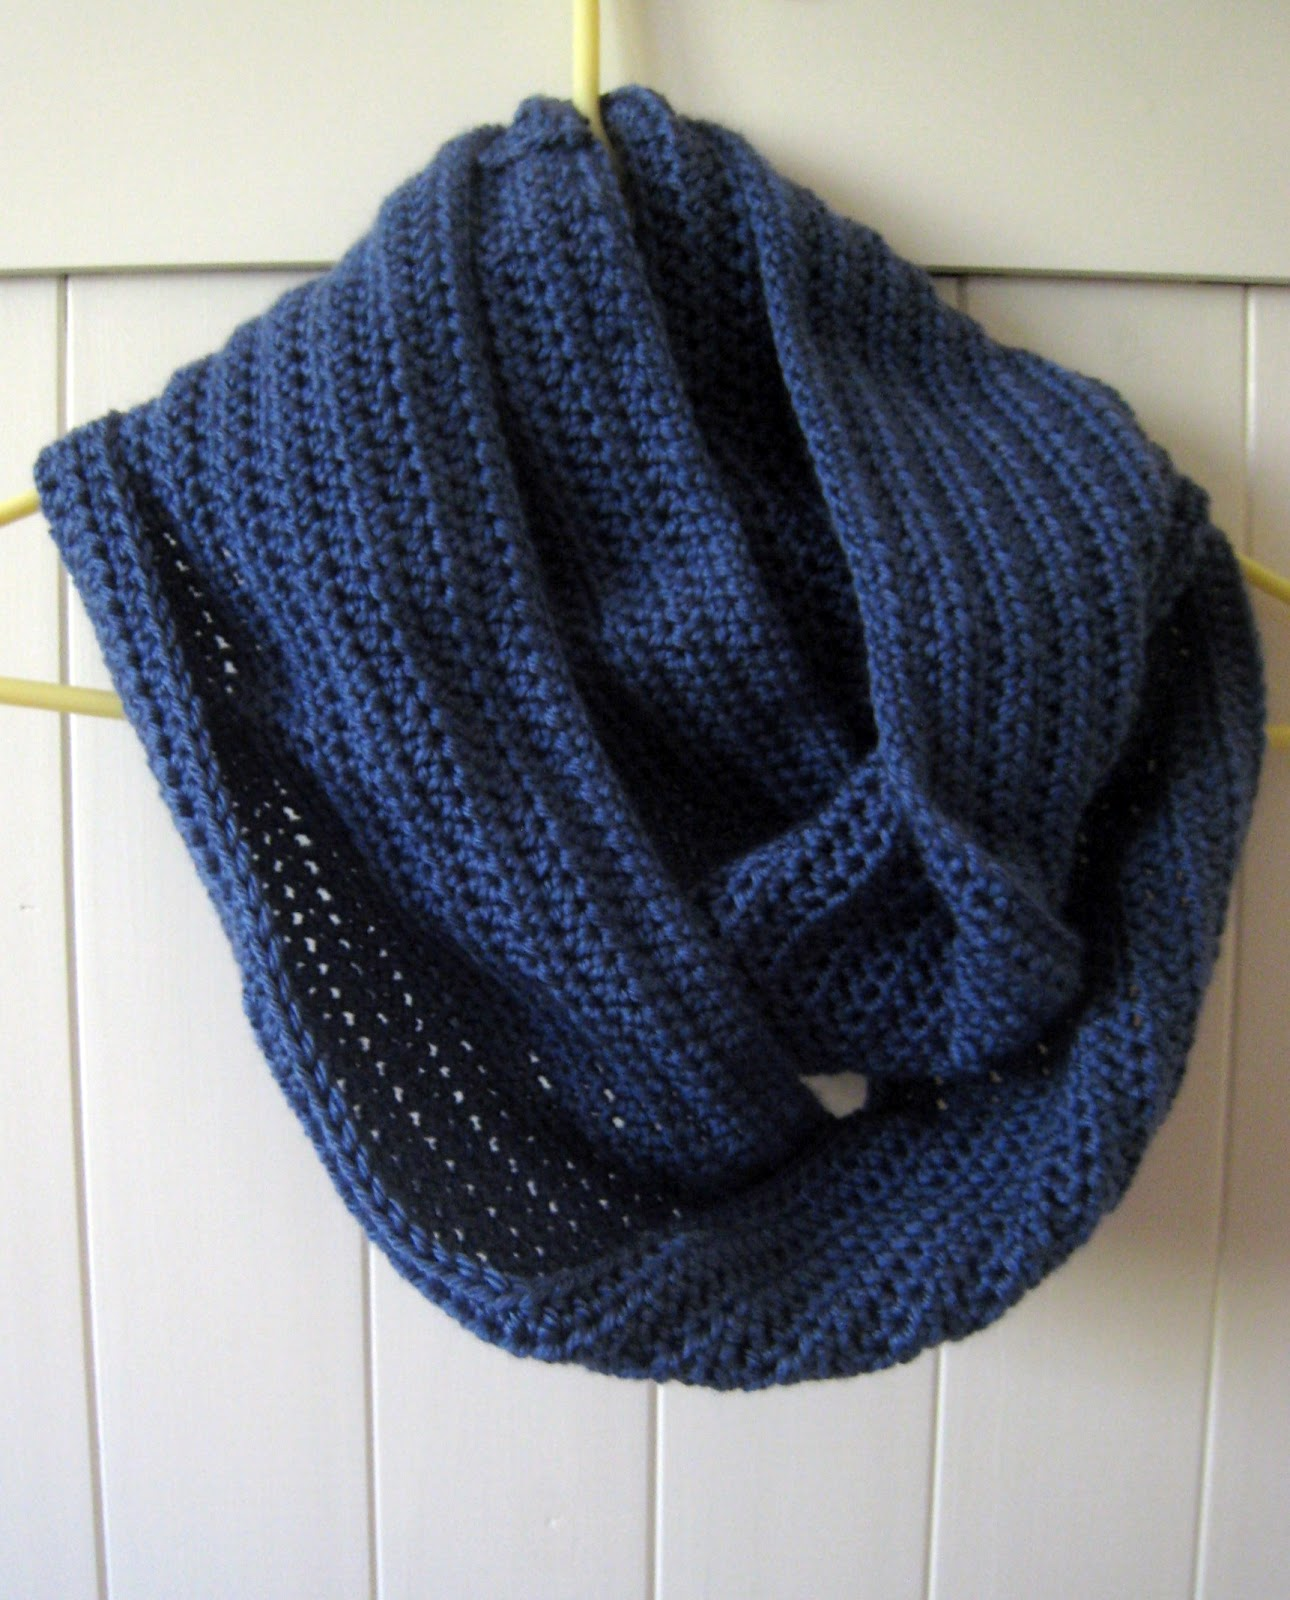 Free Knitting Pattern Twisted Cowl : Jays Boutique Blog: FREE PATTERN: Easy Twisted Cowl